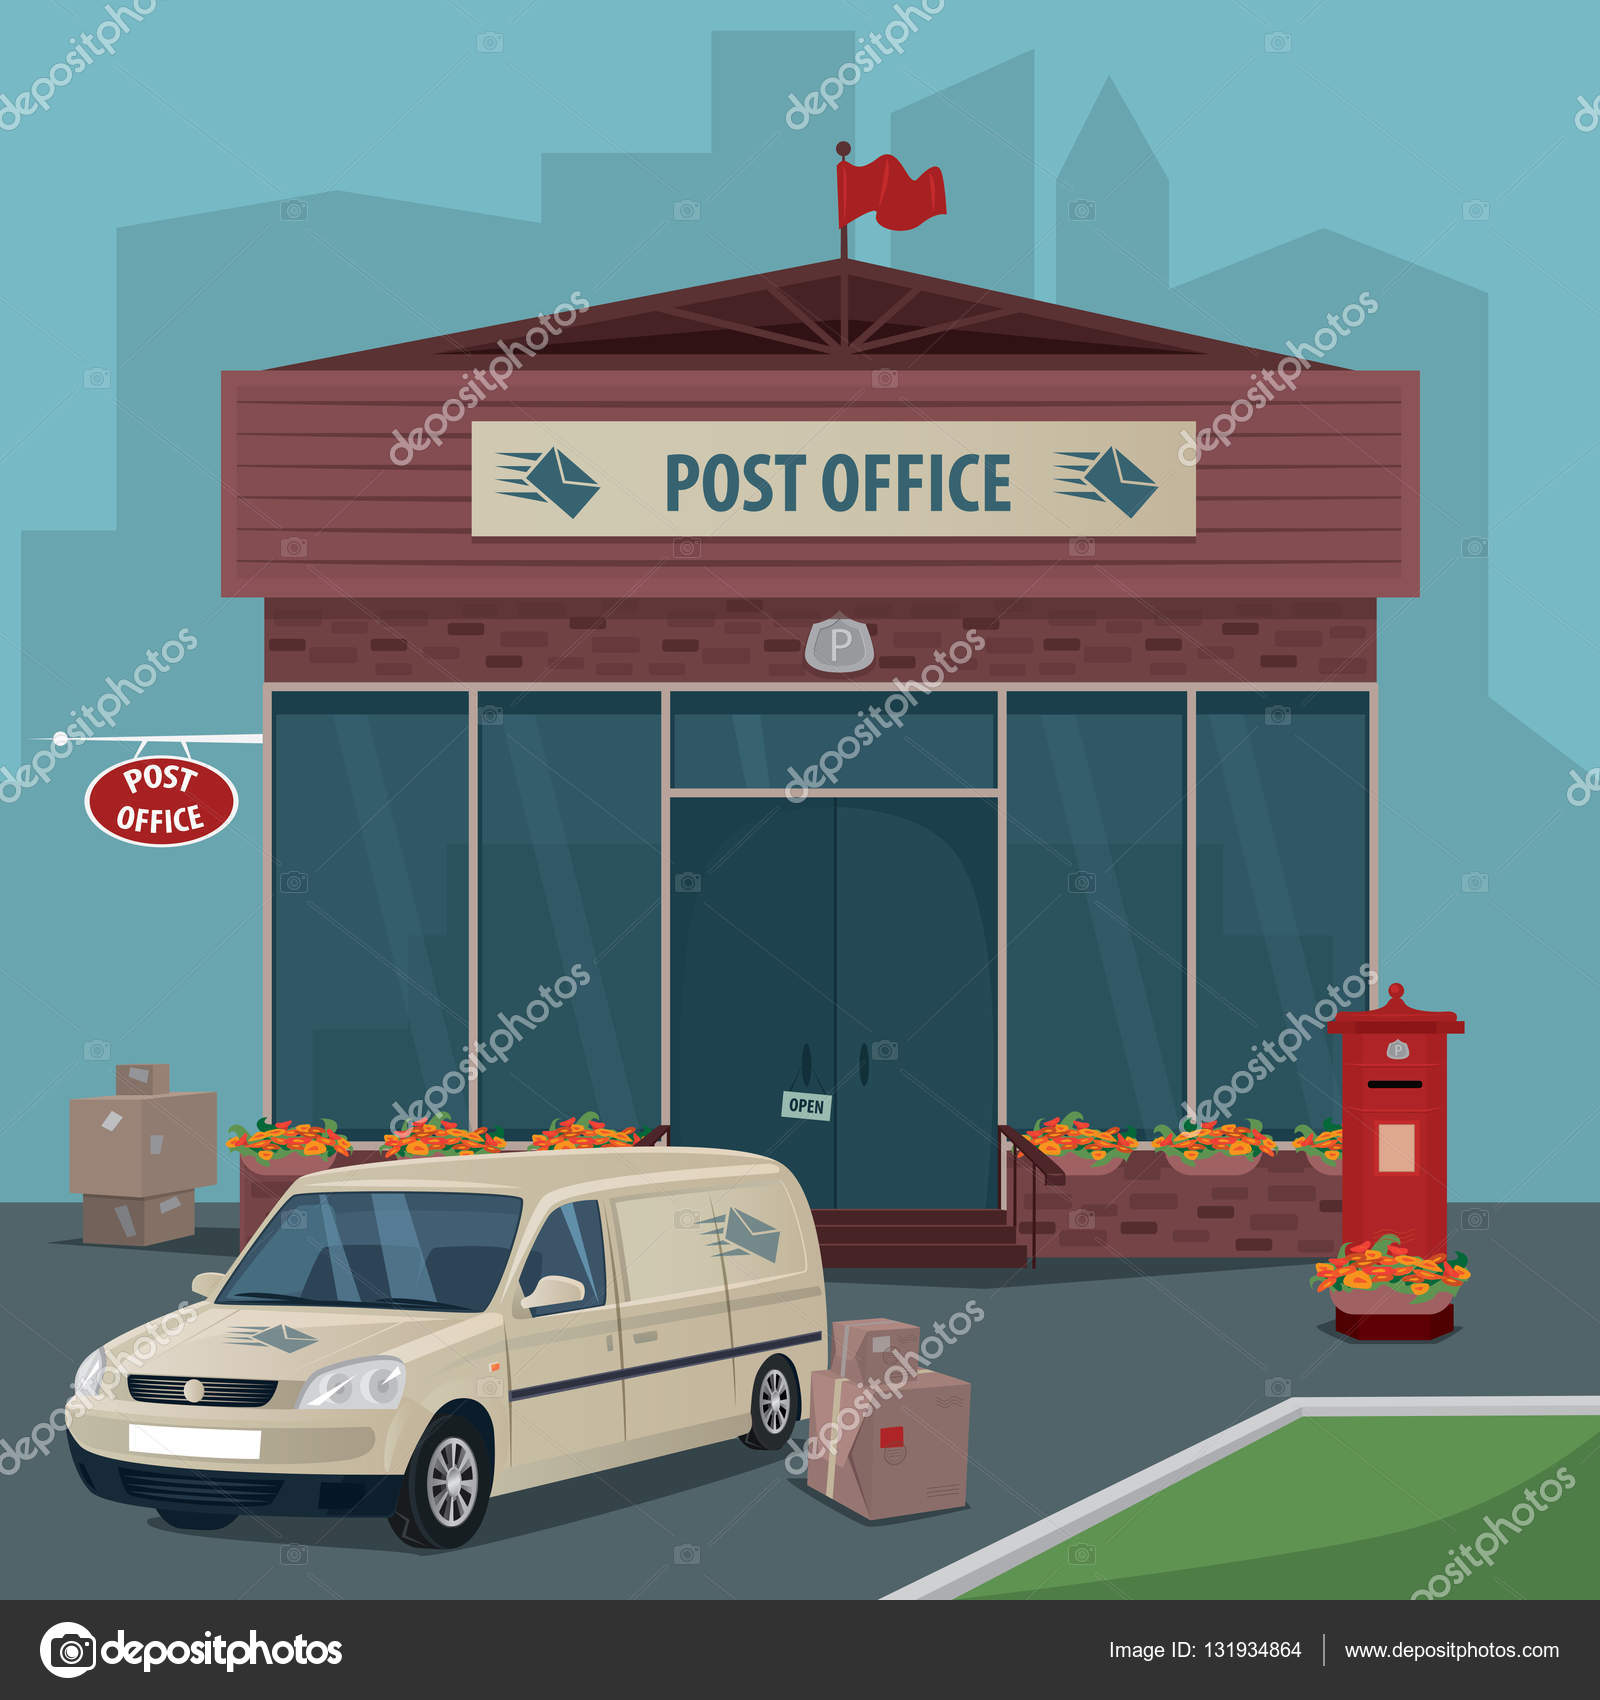 Post Service: Exterior Of Post Office And Car Of Postal Service